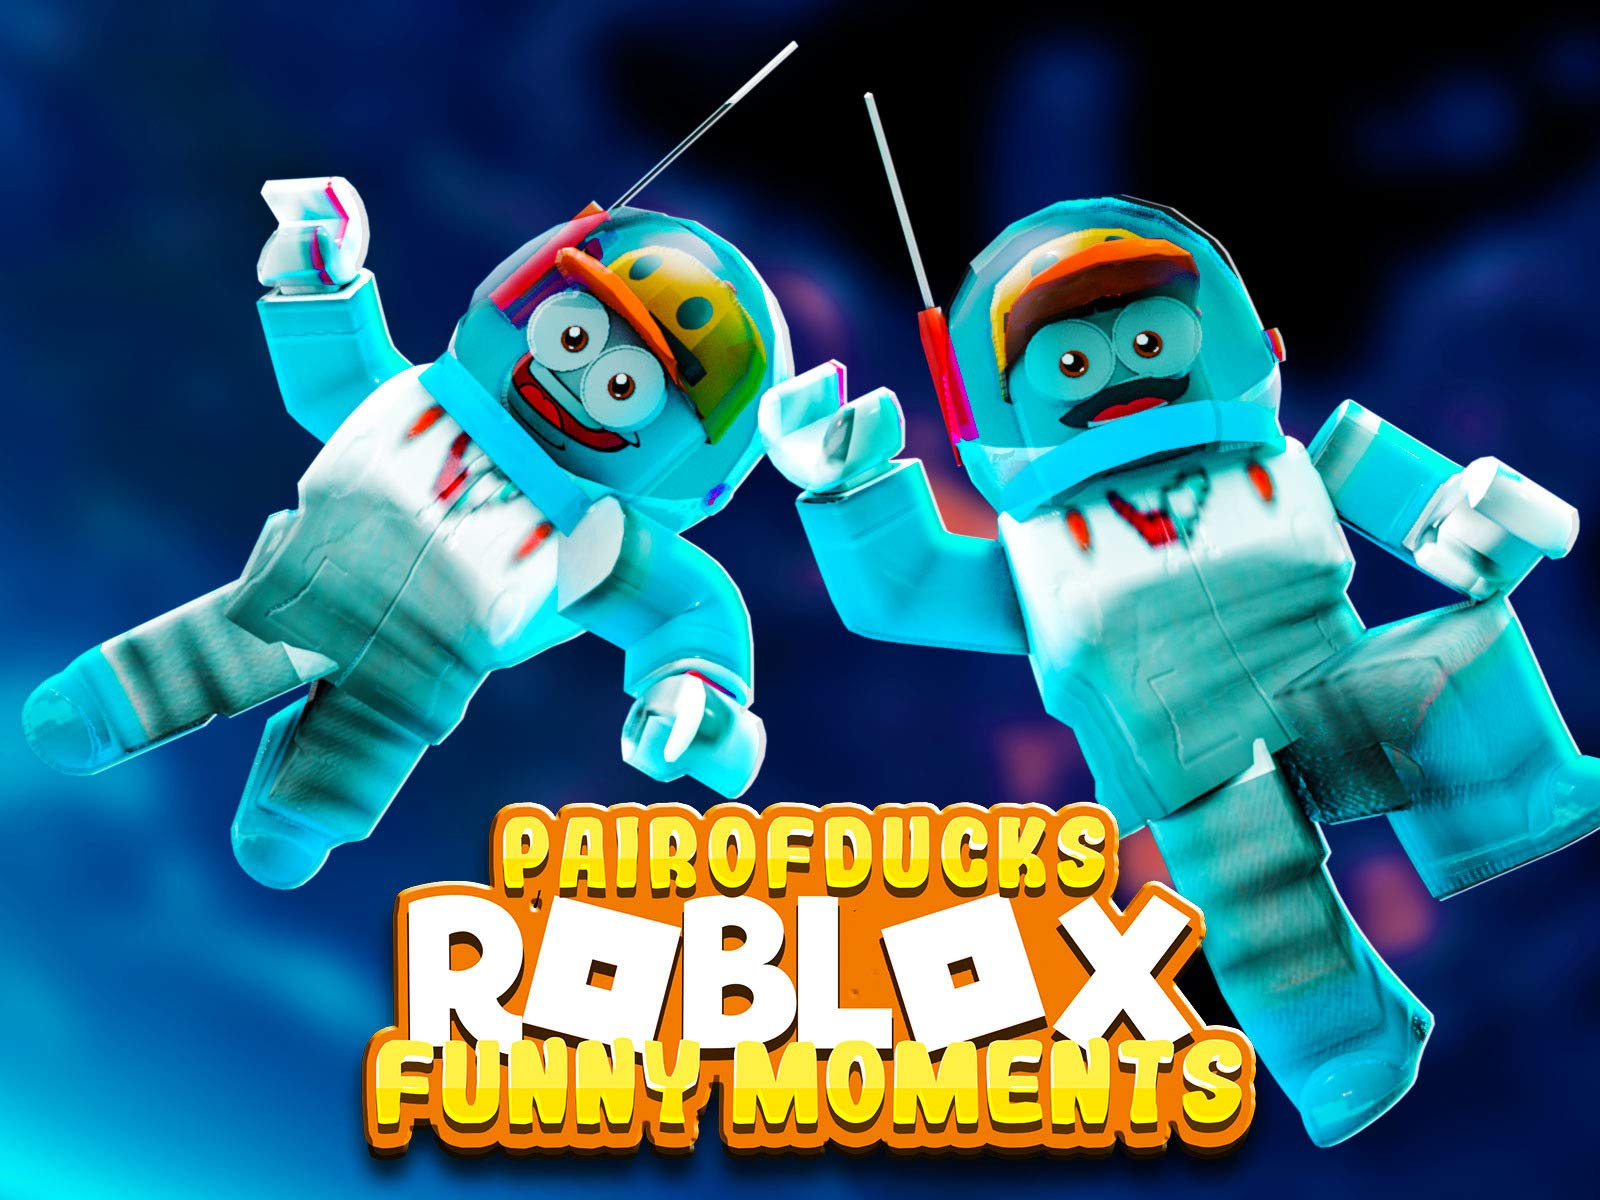 0 Uno Blue Roblox Watch Clip Roblox Funny Moments Pairofducks Prime Video